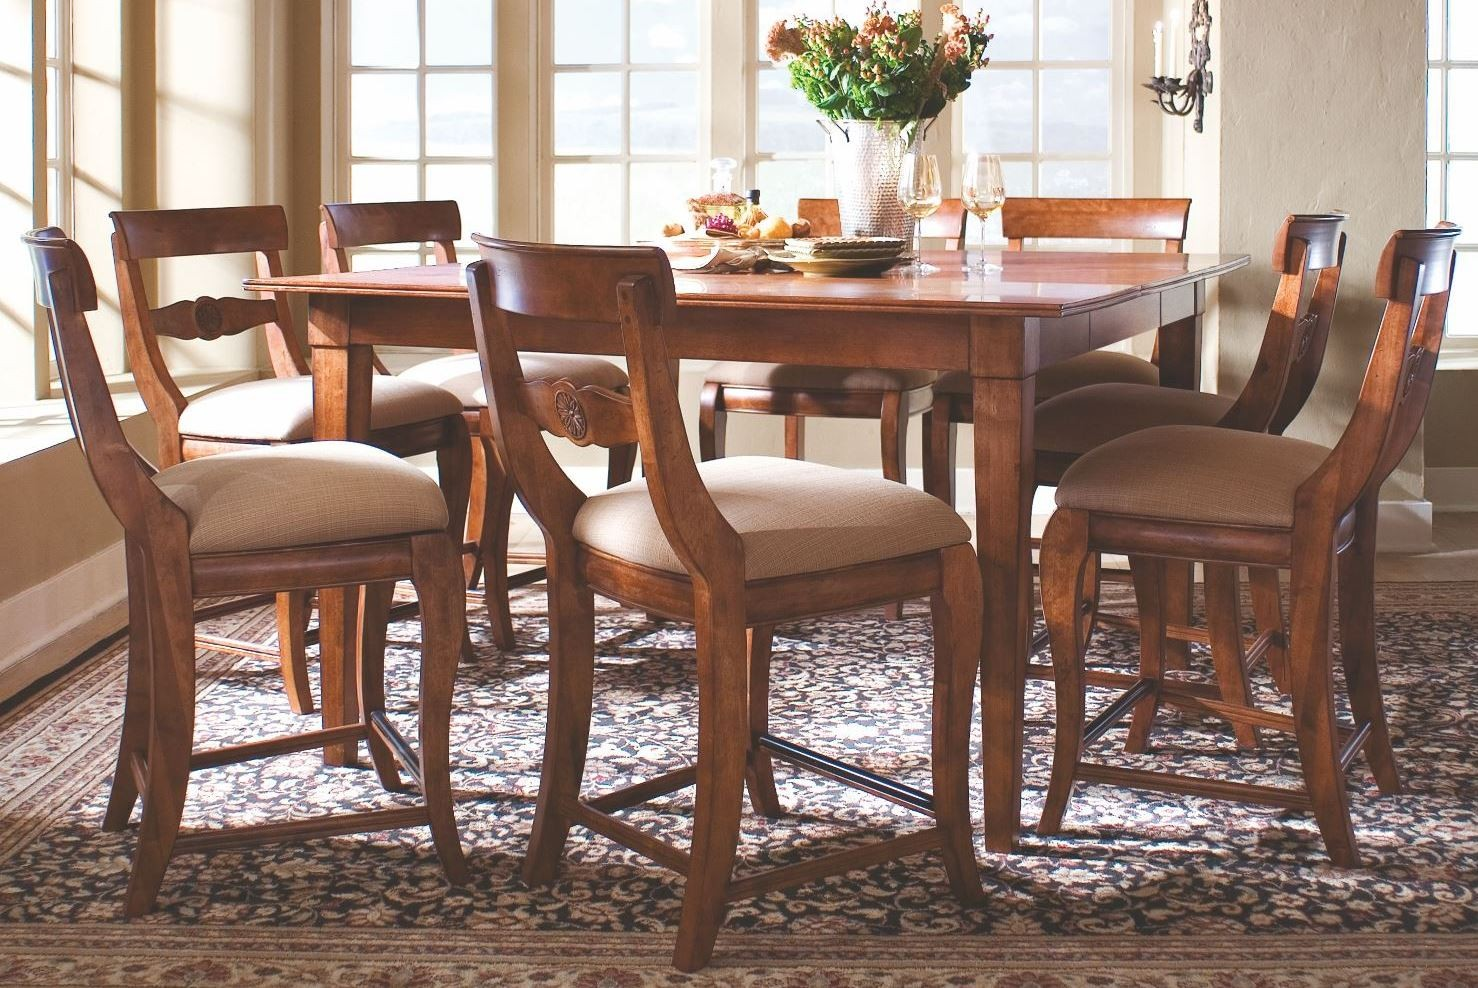 tuscano counter height table dining room set